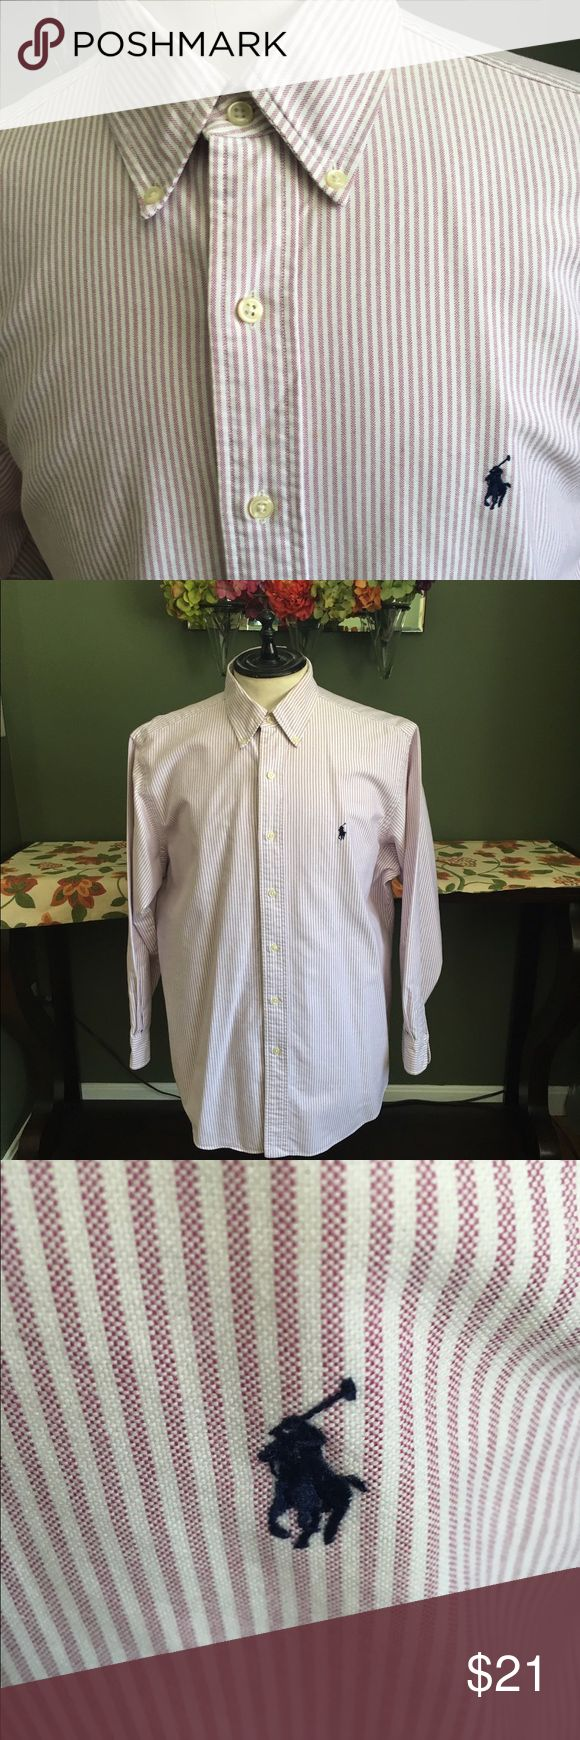 RALPH LAUREN MEN'S CLASSIC FIT SHIRT Nice Ralph Lauren men's classic fit size 161/2 32/33 sleeves button down shirt! ECU deep pink and white stripe. Great with jeans or shorts 😊 Ralph Lauren Shirts Casual Button Down Shirts